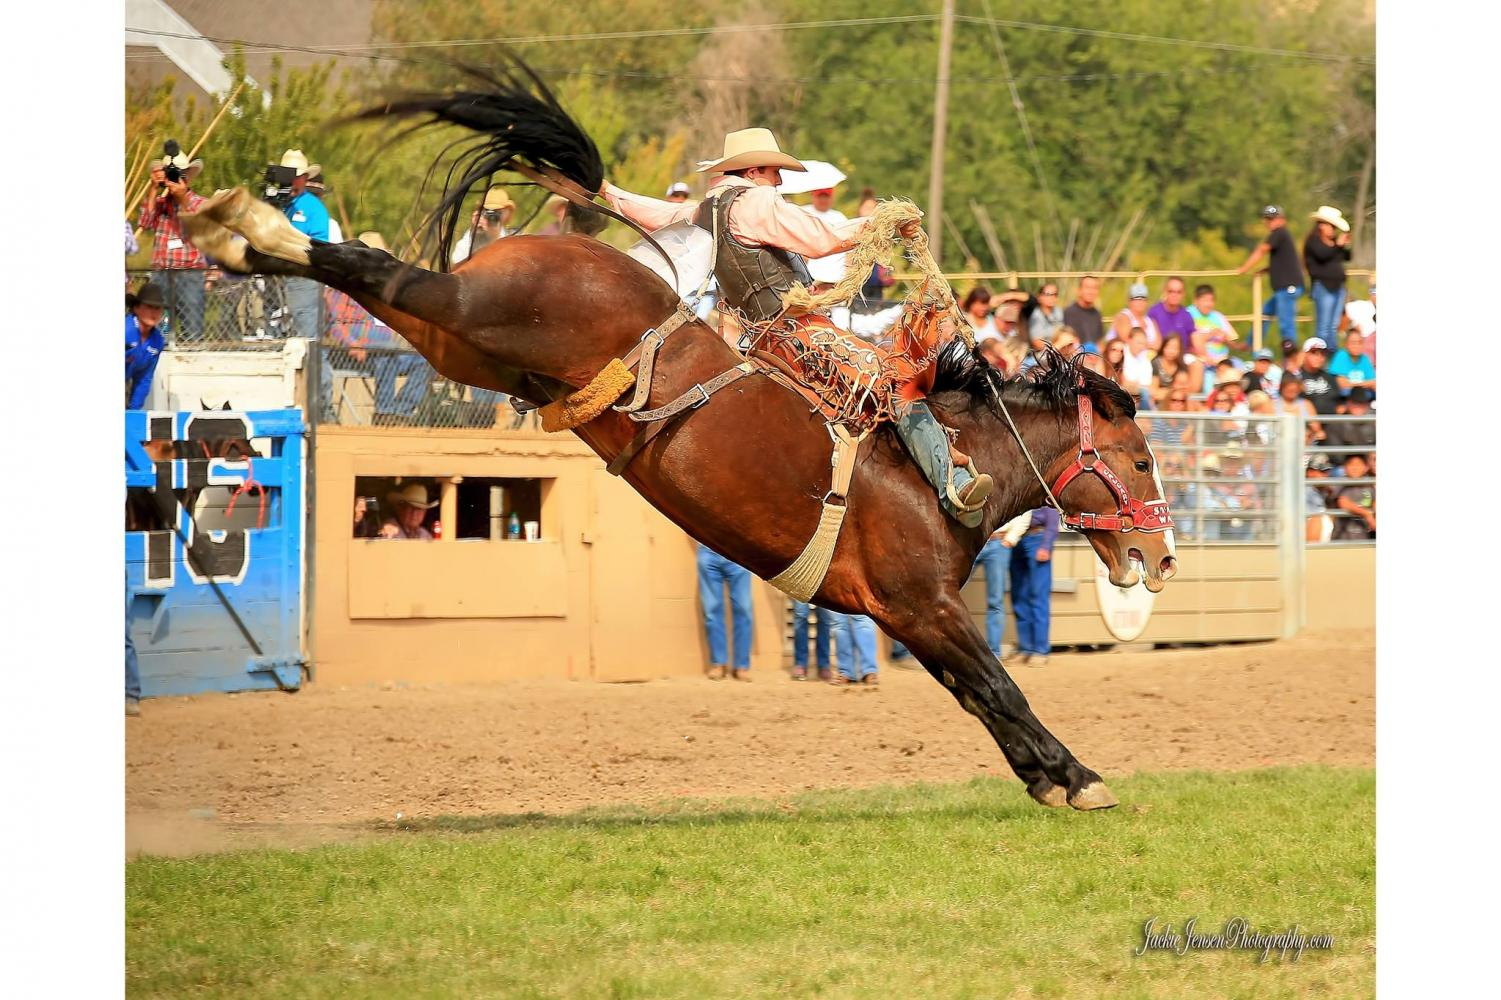 Brody Cress is off to The American Rodeo